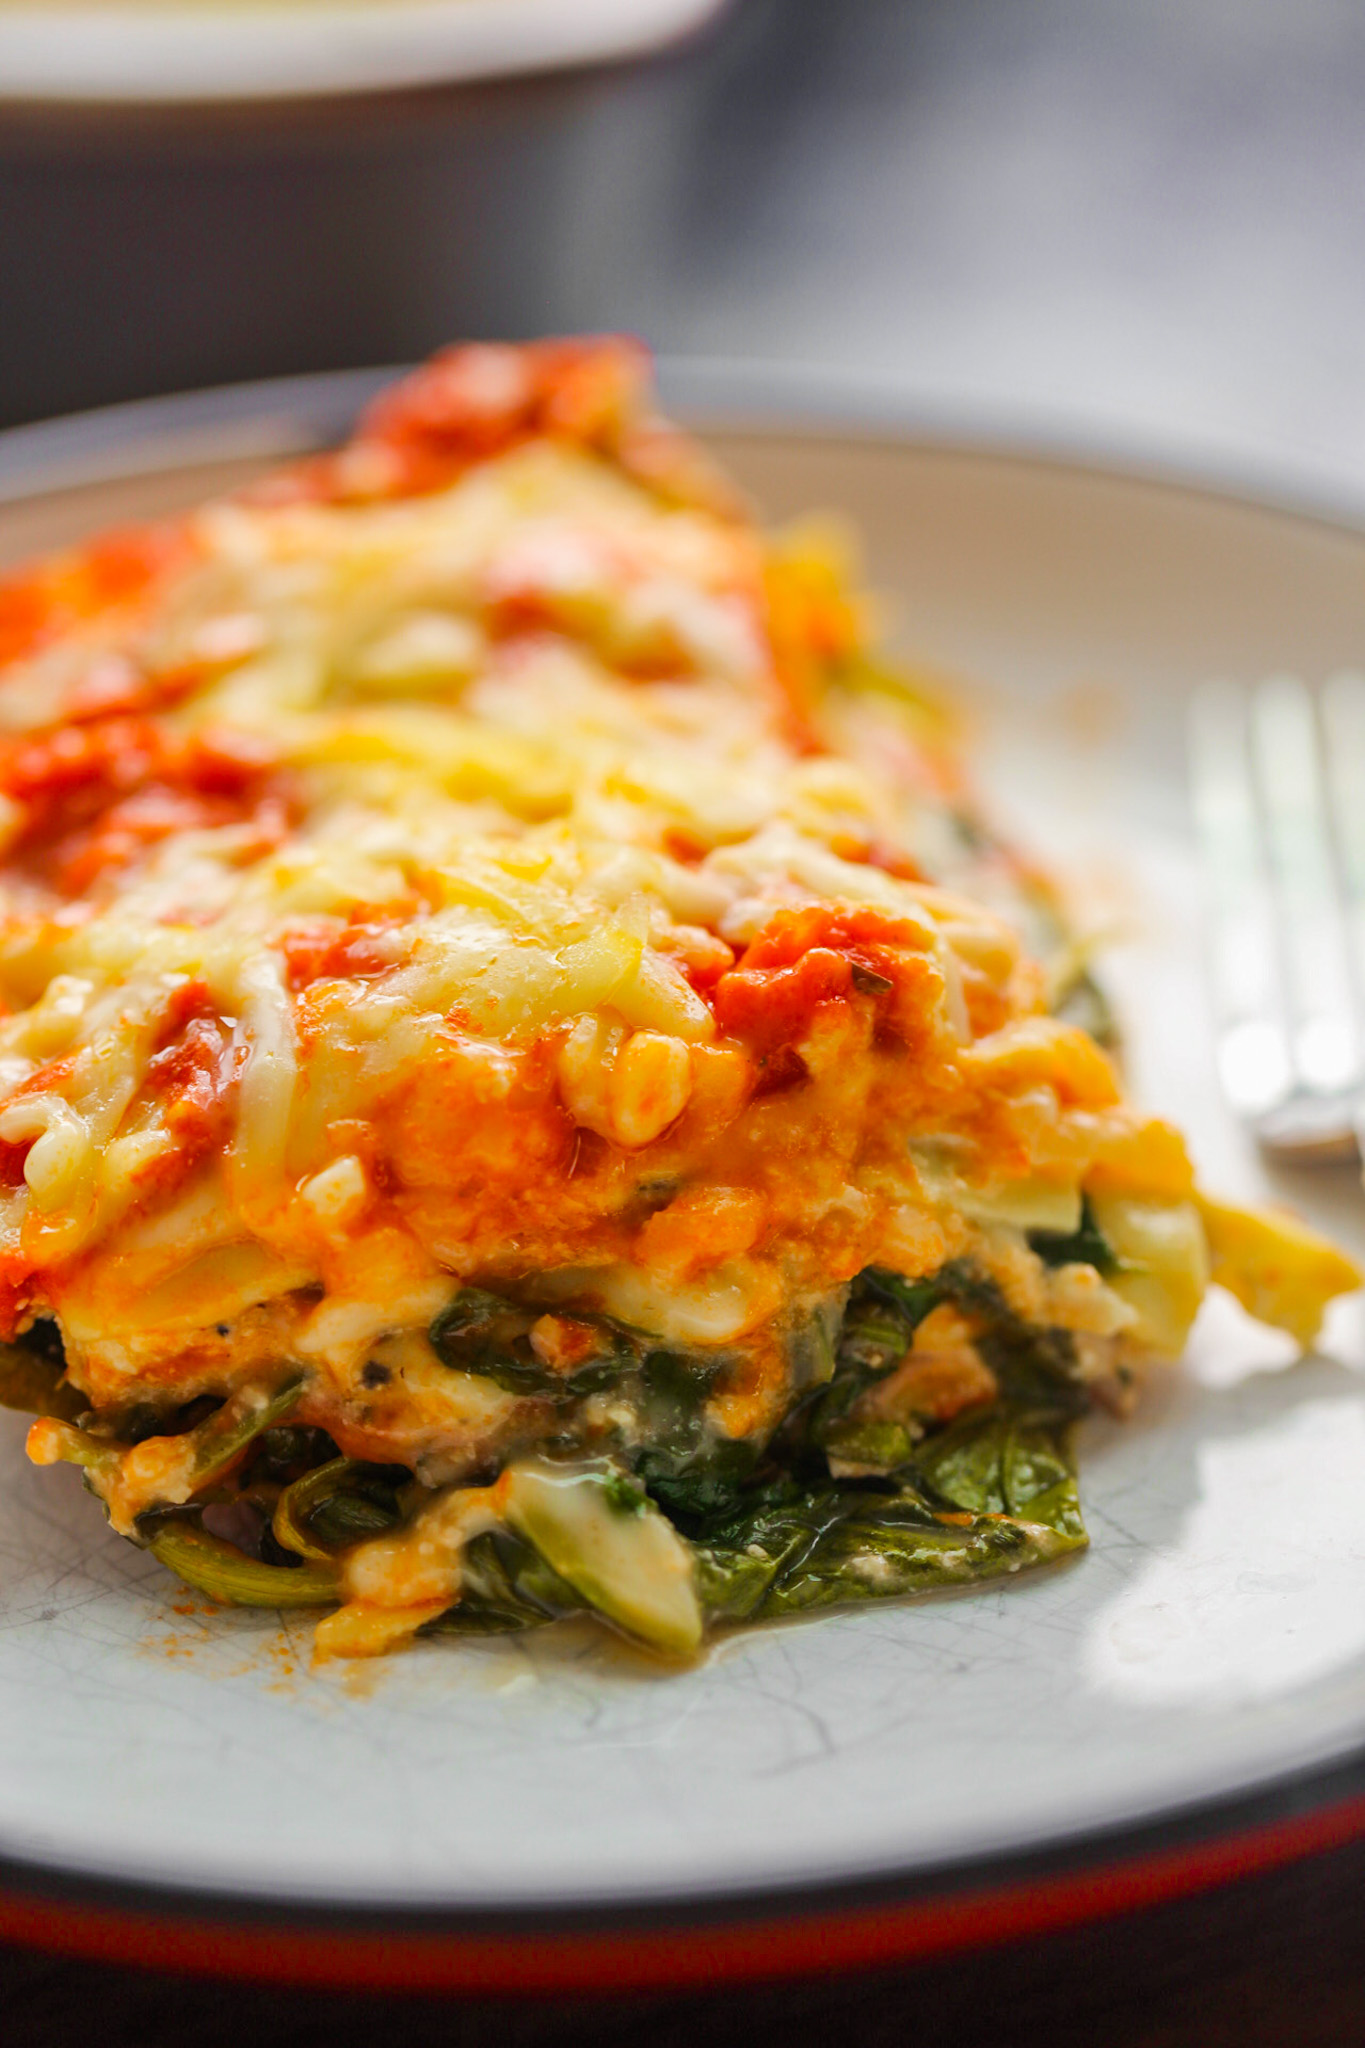 cheesy lasagna warm from oven